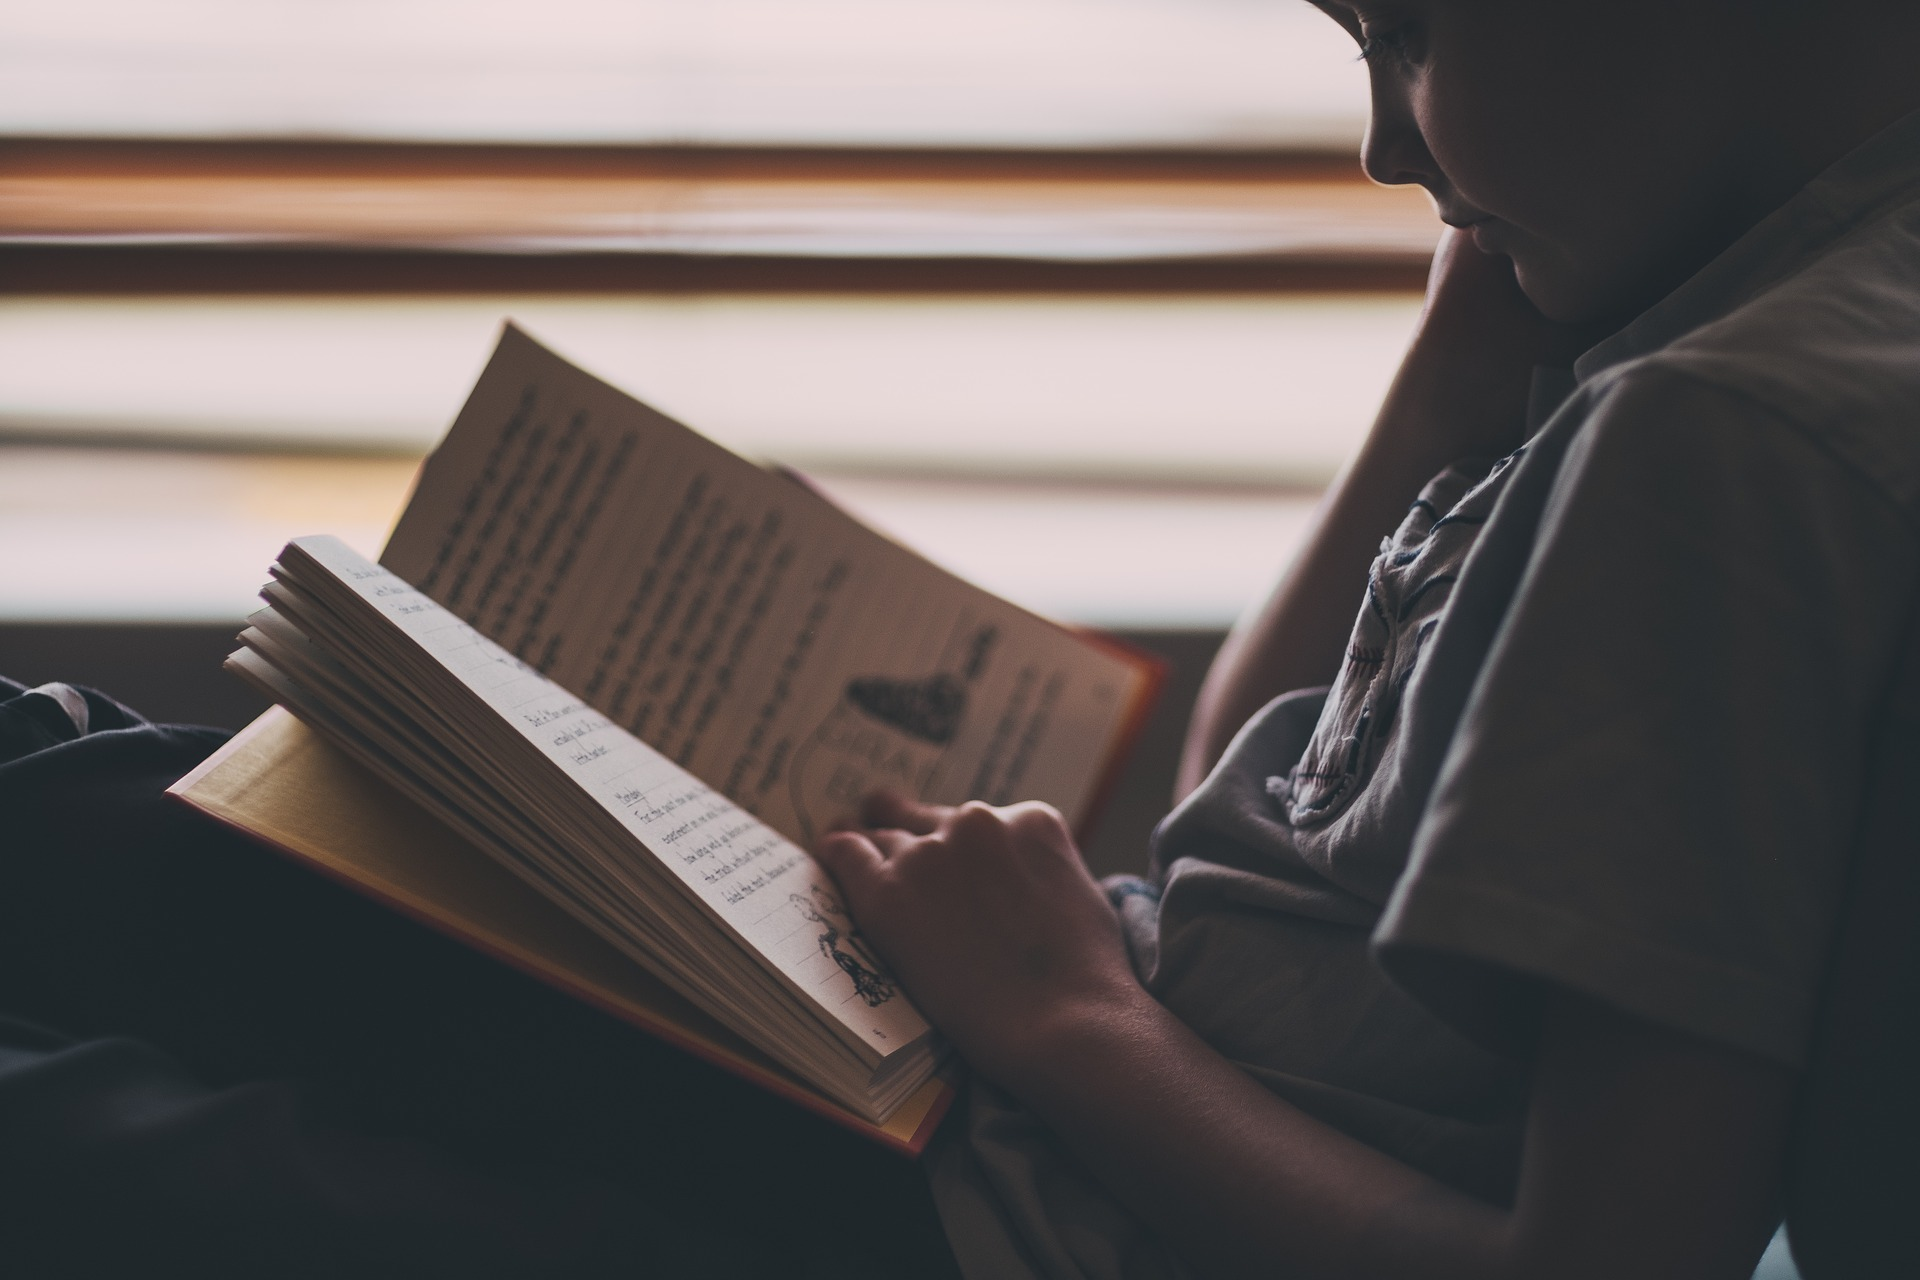 A study from the University of Washington found that when children with reading difficulties underwent an intensive tutoring program, their brains' white matter strengthened, and their reading skills improved.